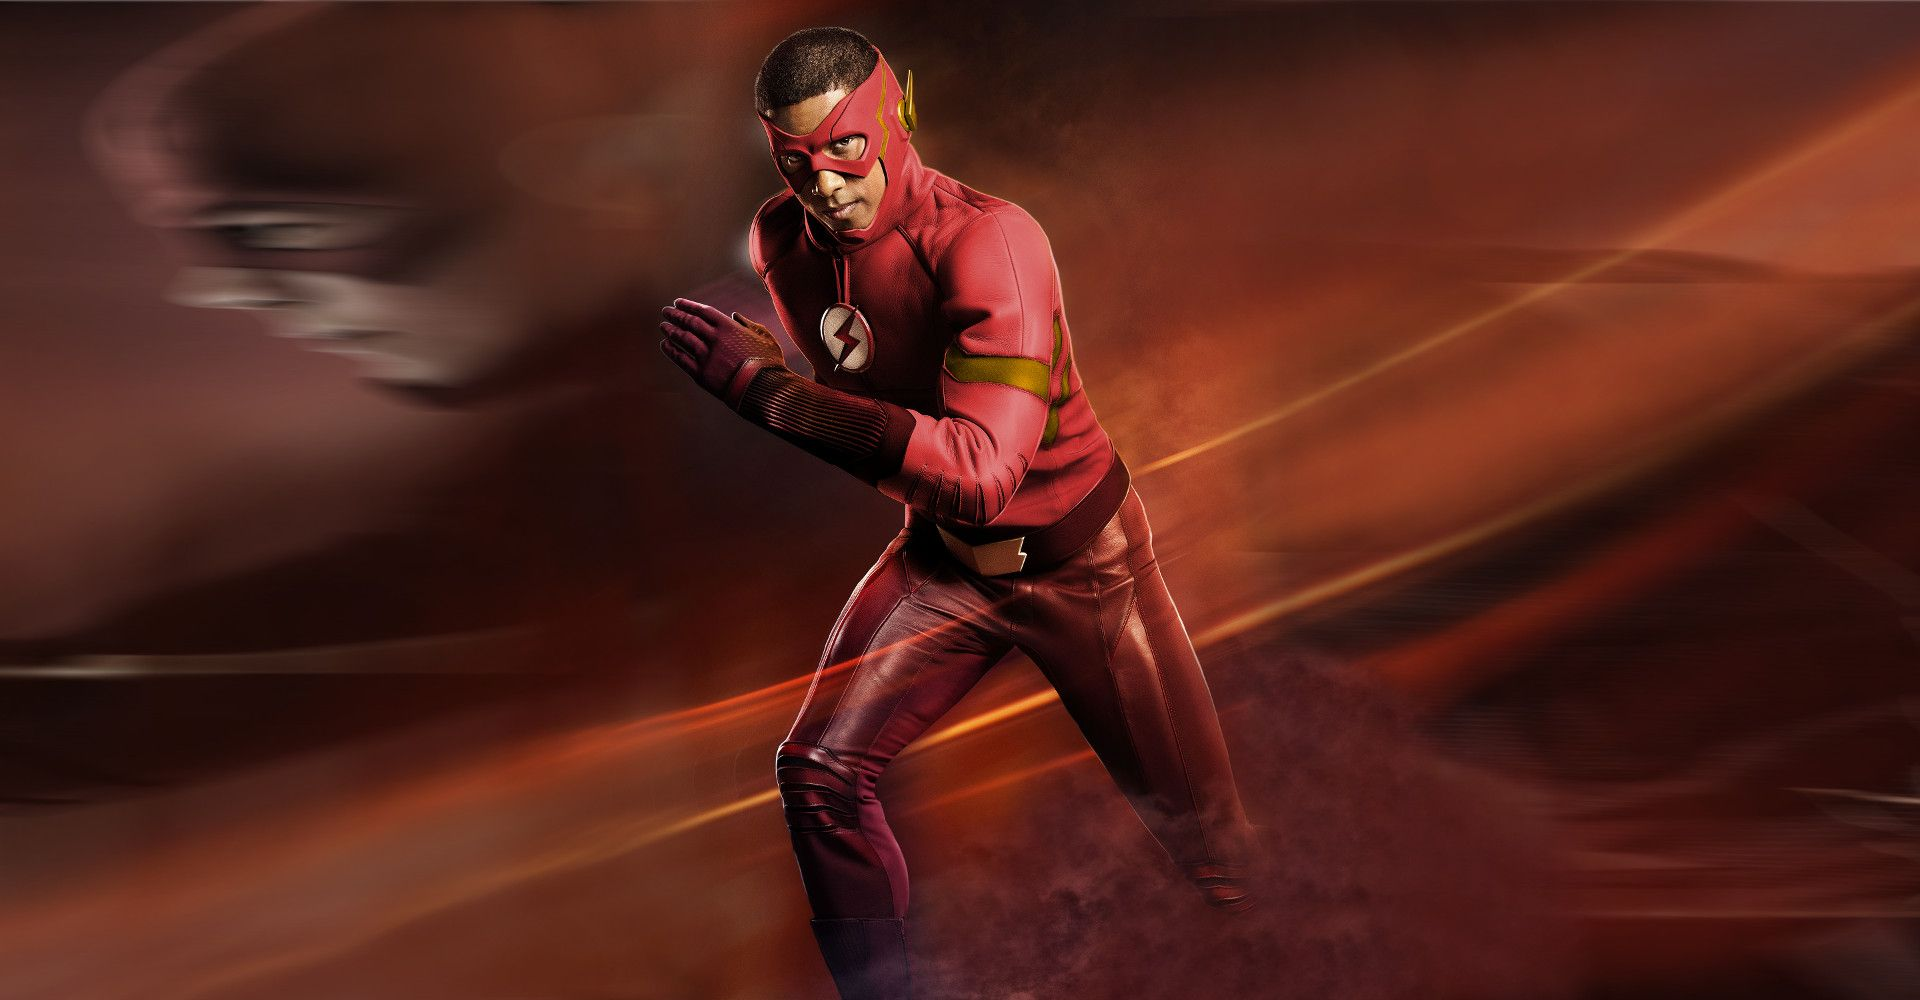 Desktop Wallpaper Wally West As The Flash, Red Suit, Tv Show